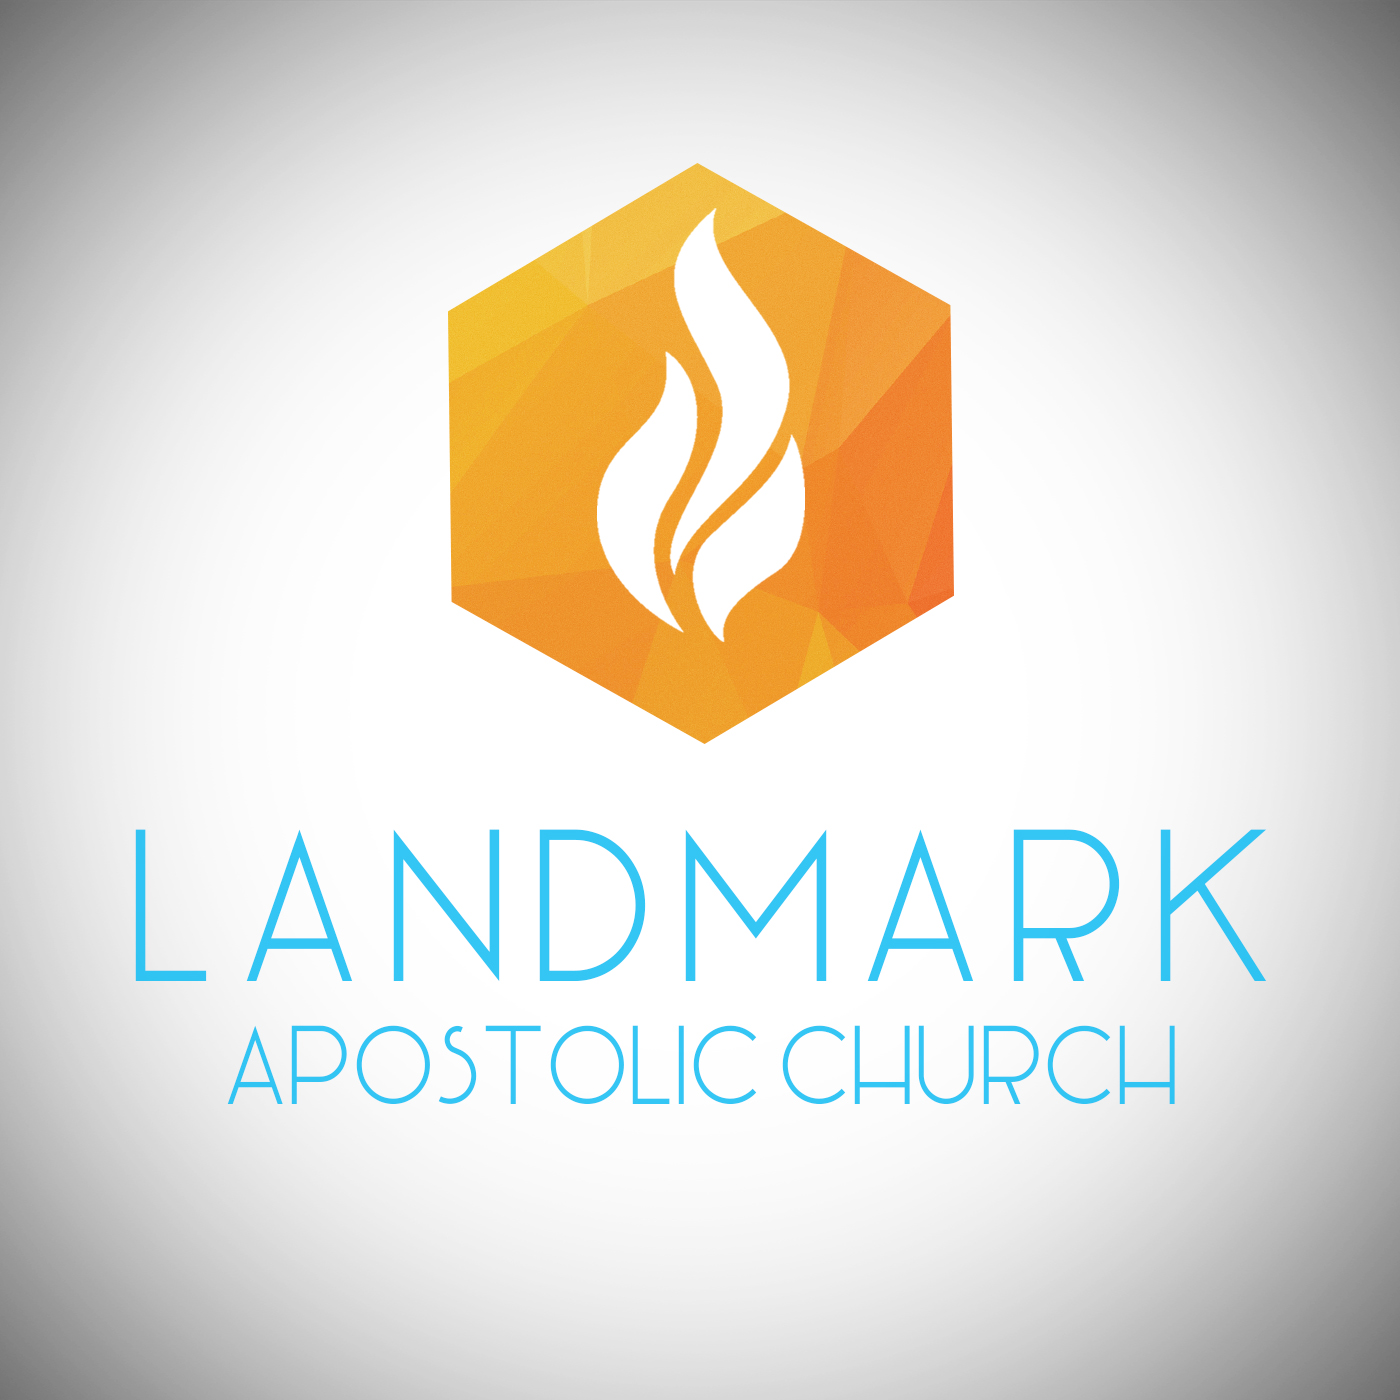 Landmark Apostolic Church